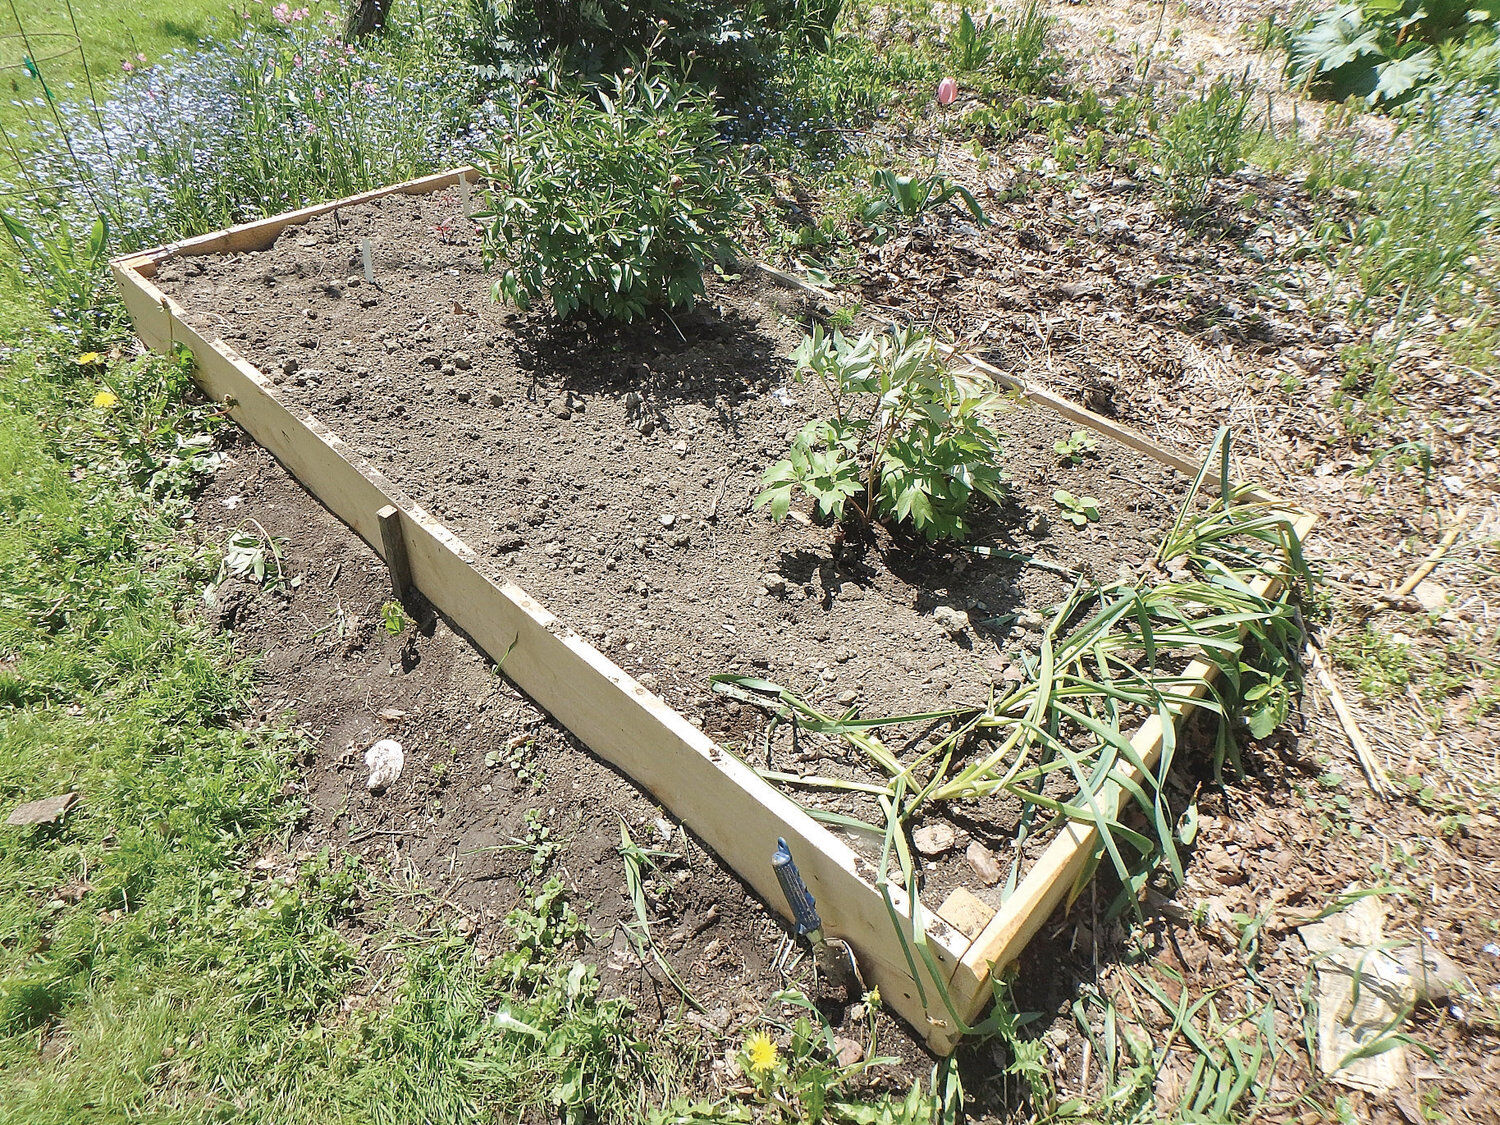 Henry Homeyer Tips For Building Raised Beds For Your Garden Community News Reformer Com